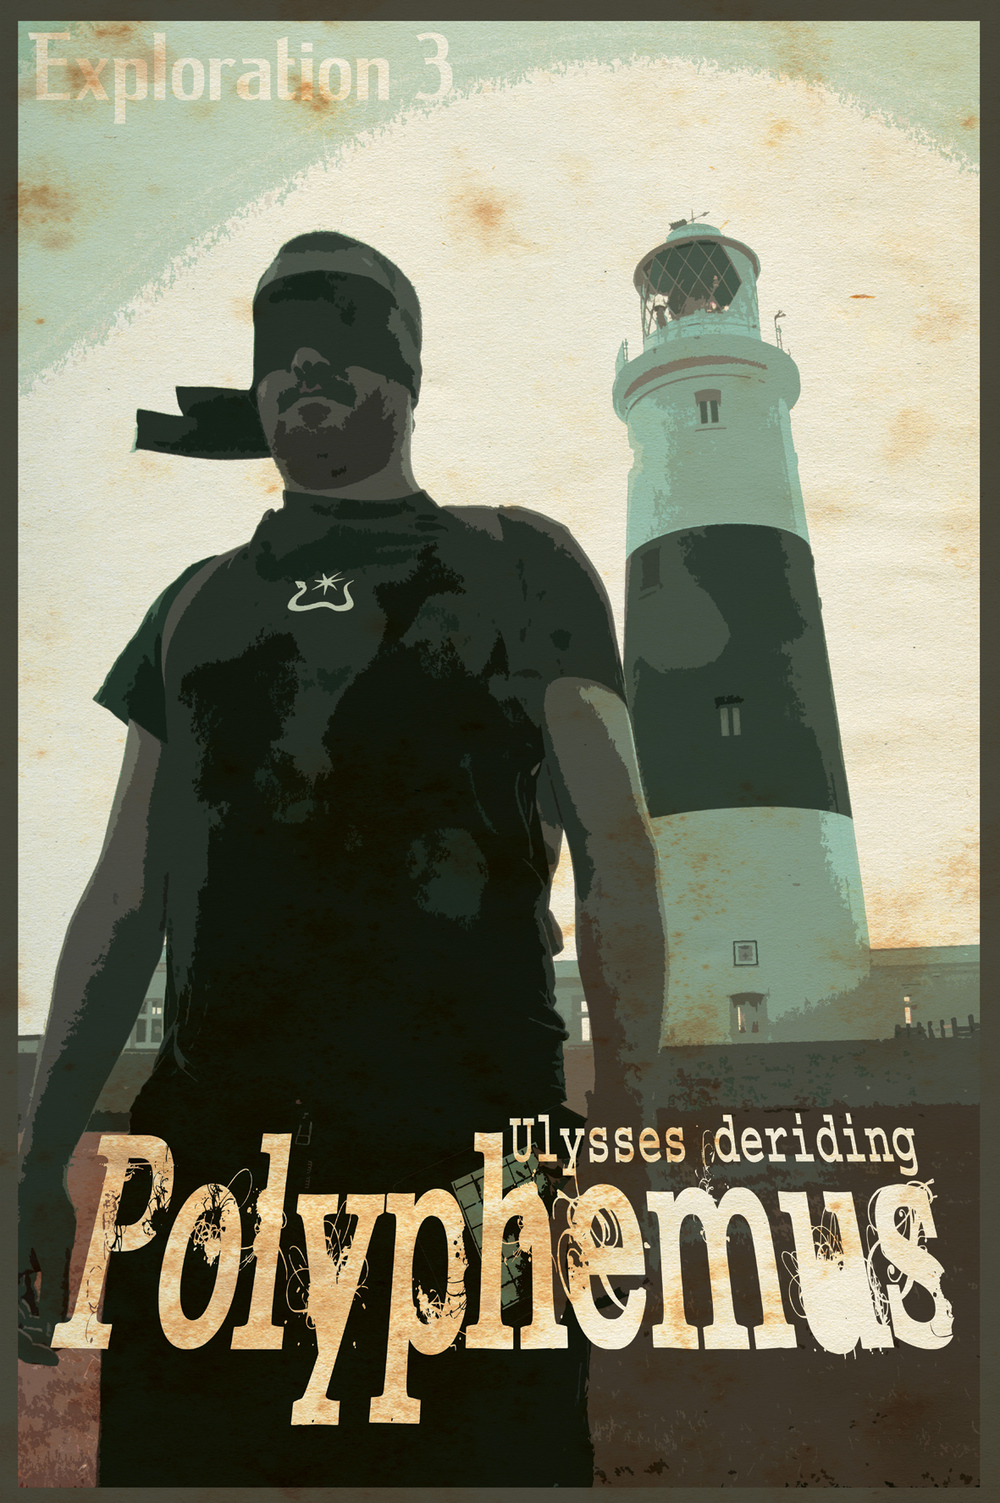 Poster for Exploration 3: Ulysses Deriding Polyphemus. Part of the Ulysses Black Initiative